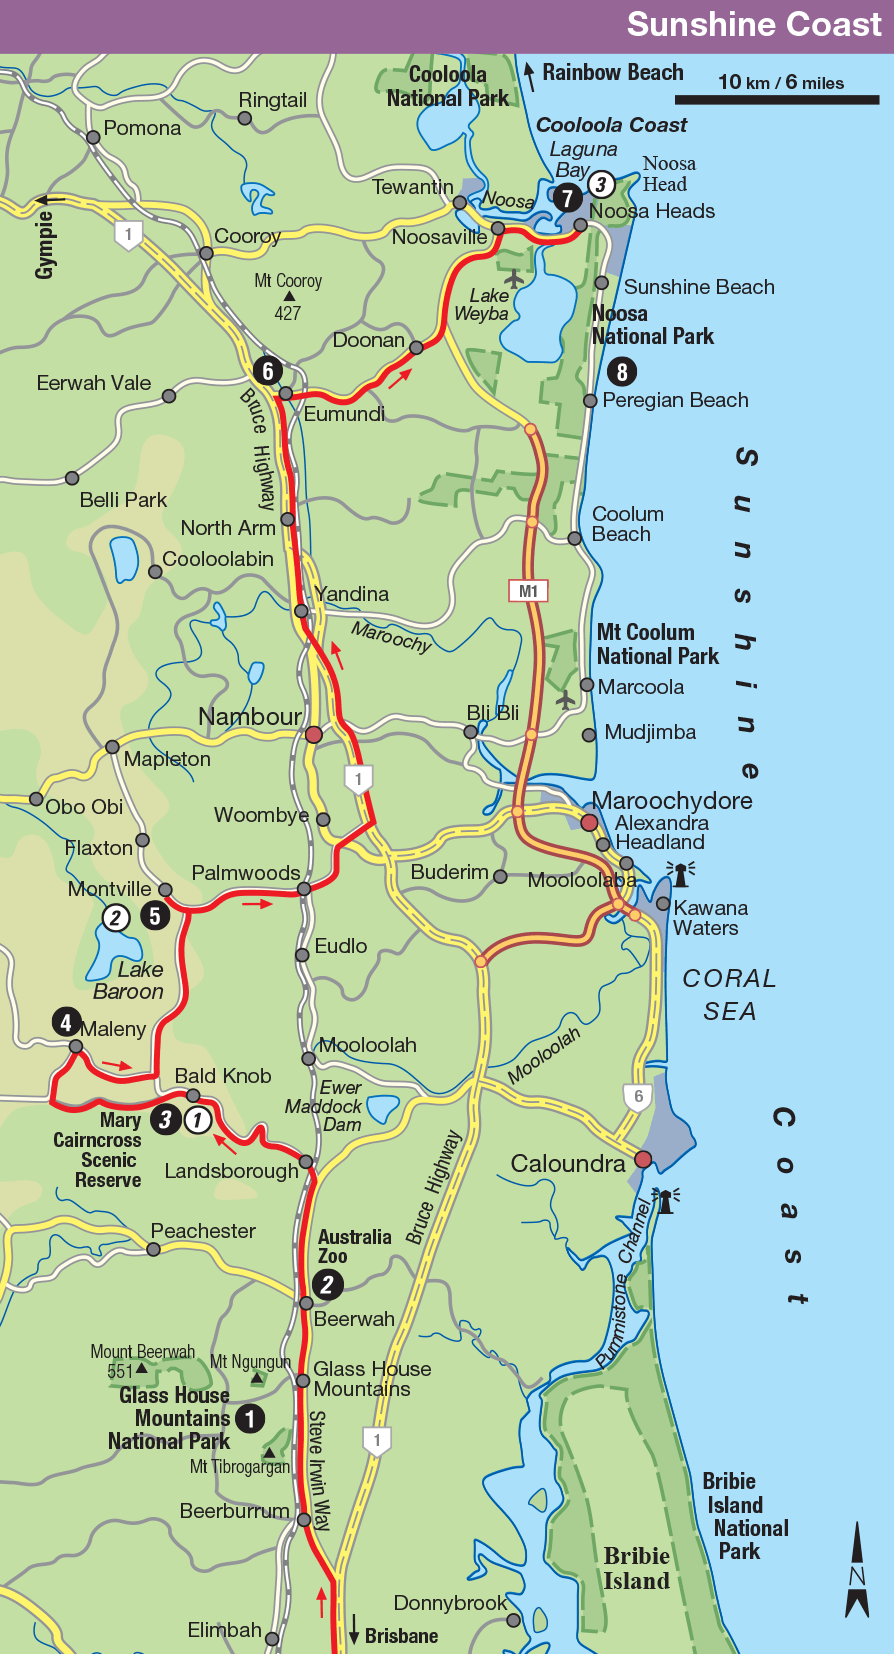 Sunshine Coast Hinterland Map